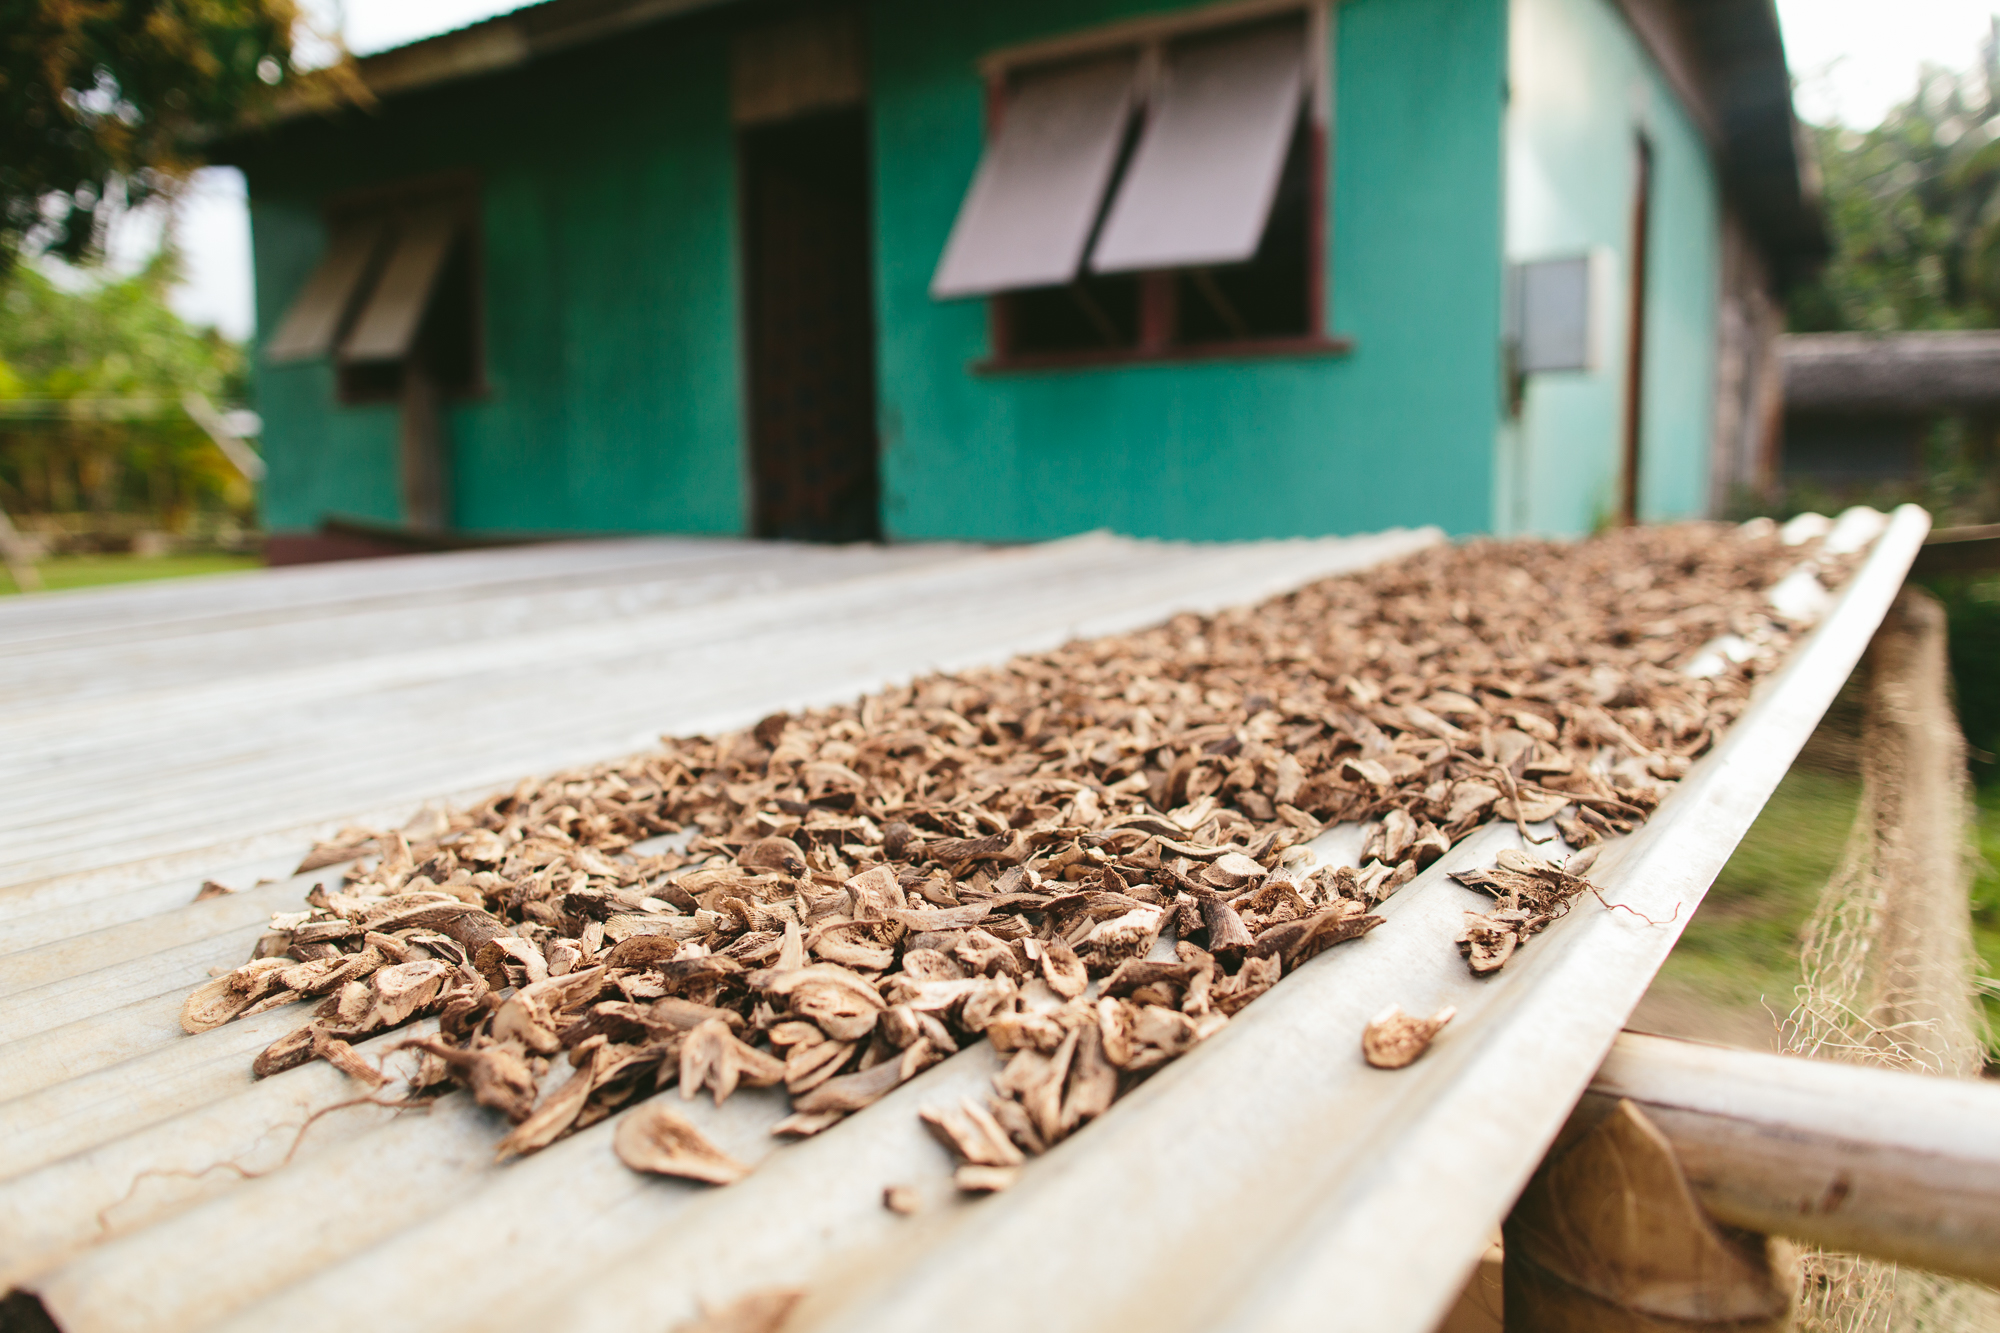 Drying Kava in Village - The Remote Resort Fiji Islands